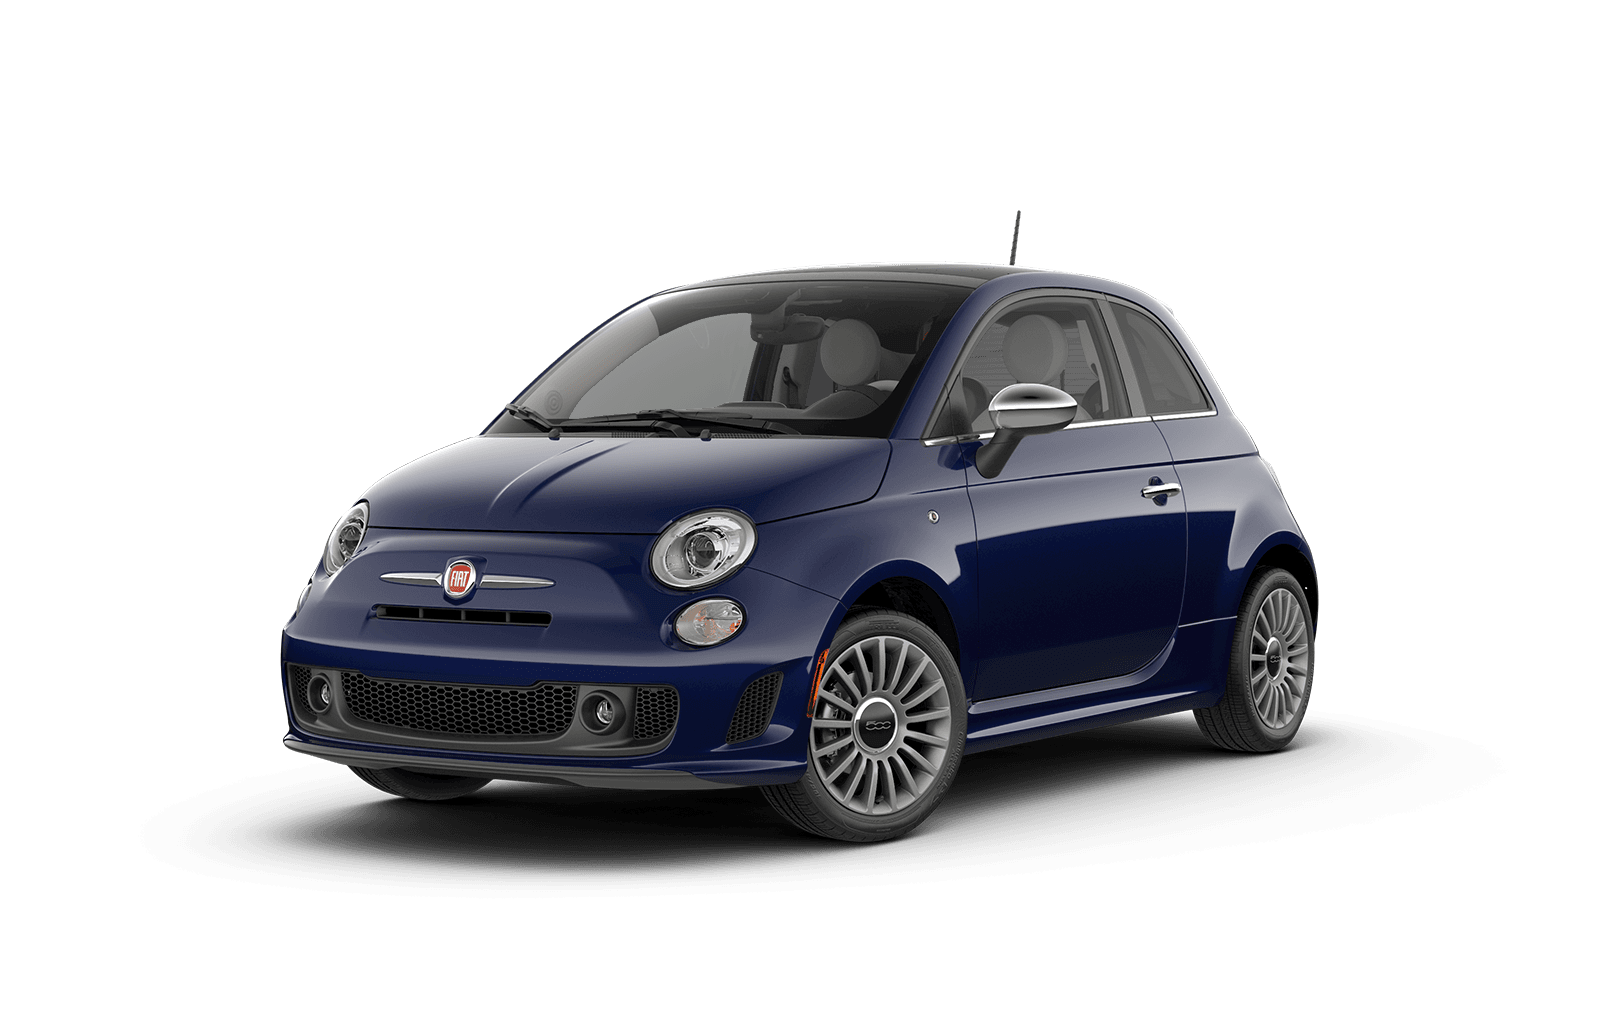 2019 FIAT 500 Full View in Navy Blue with Wheels